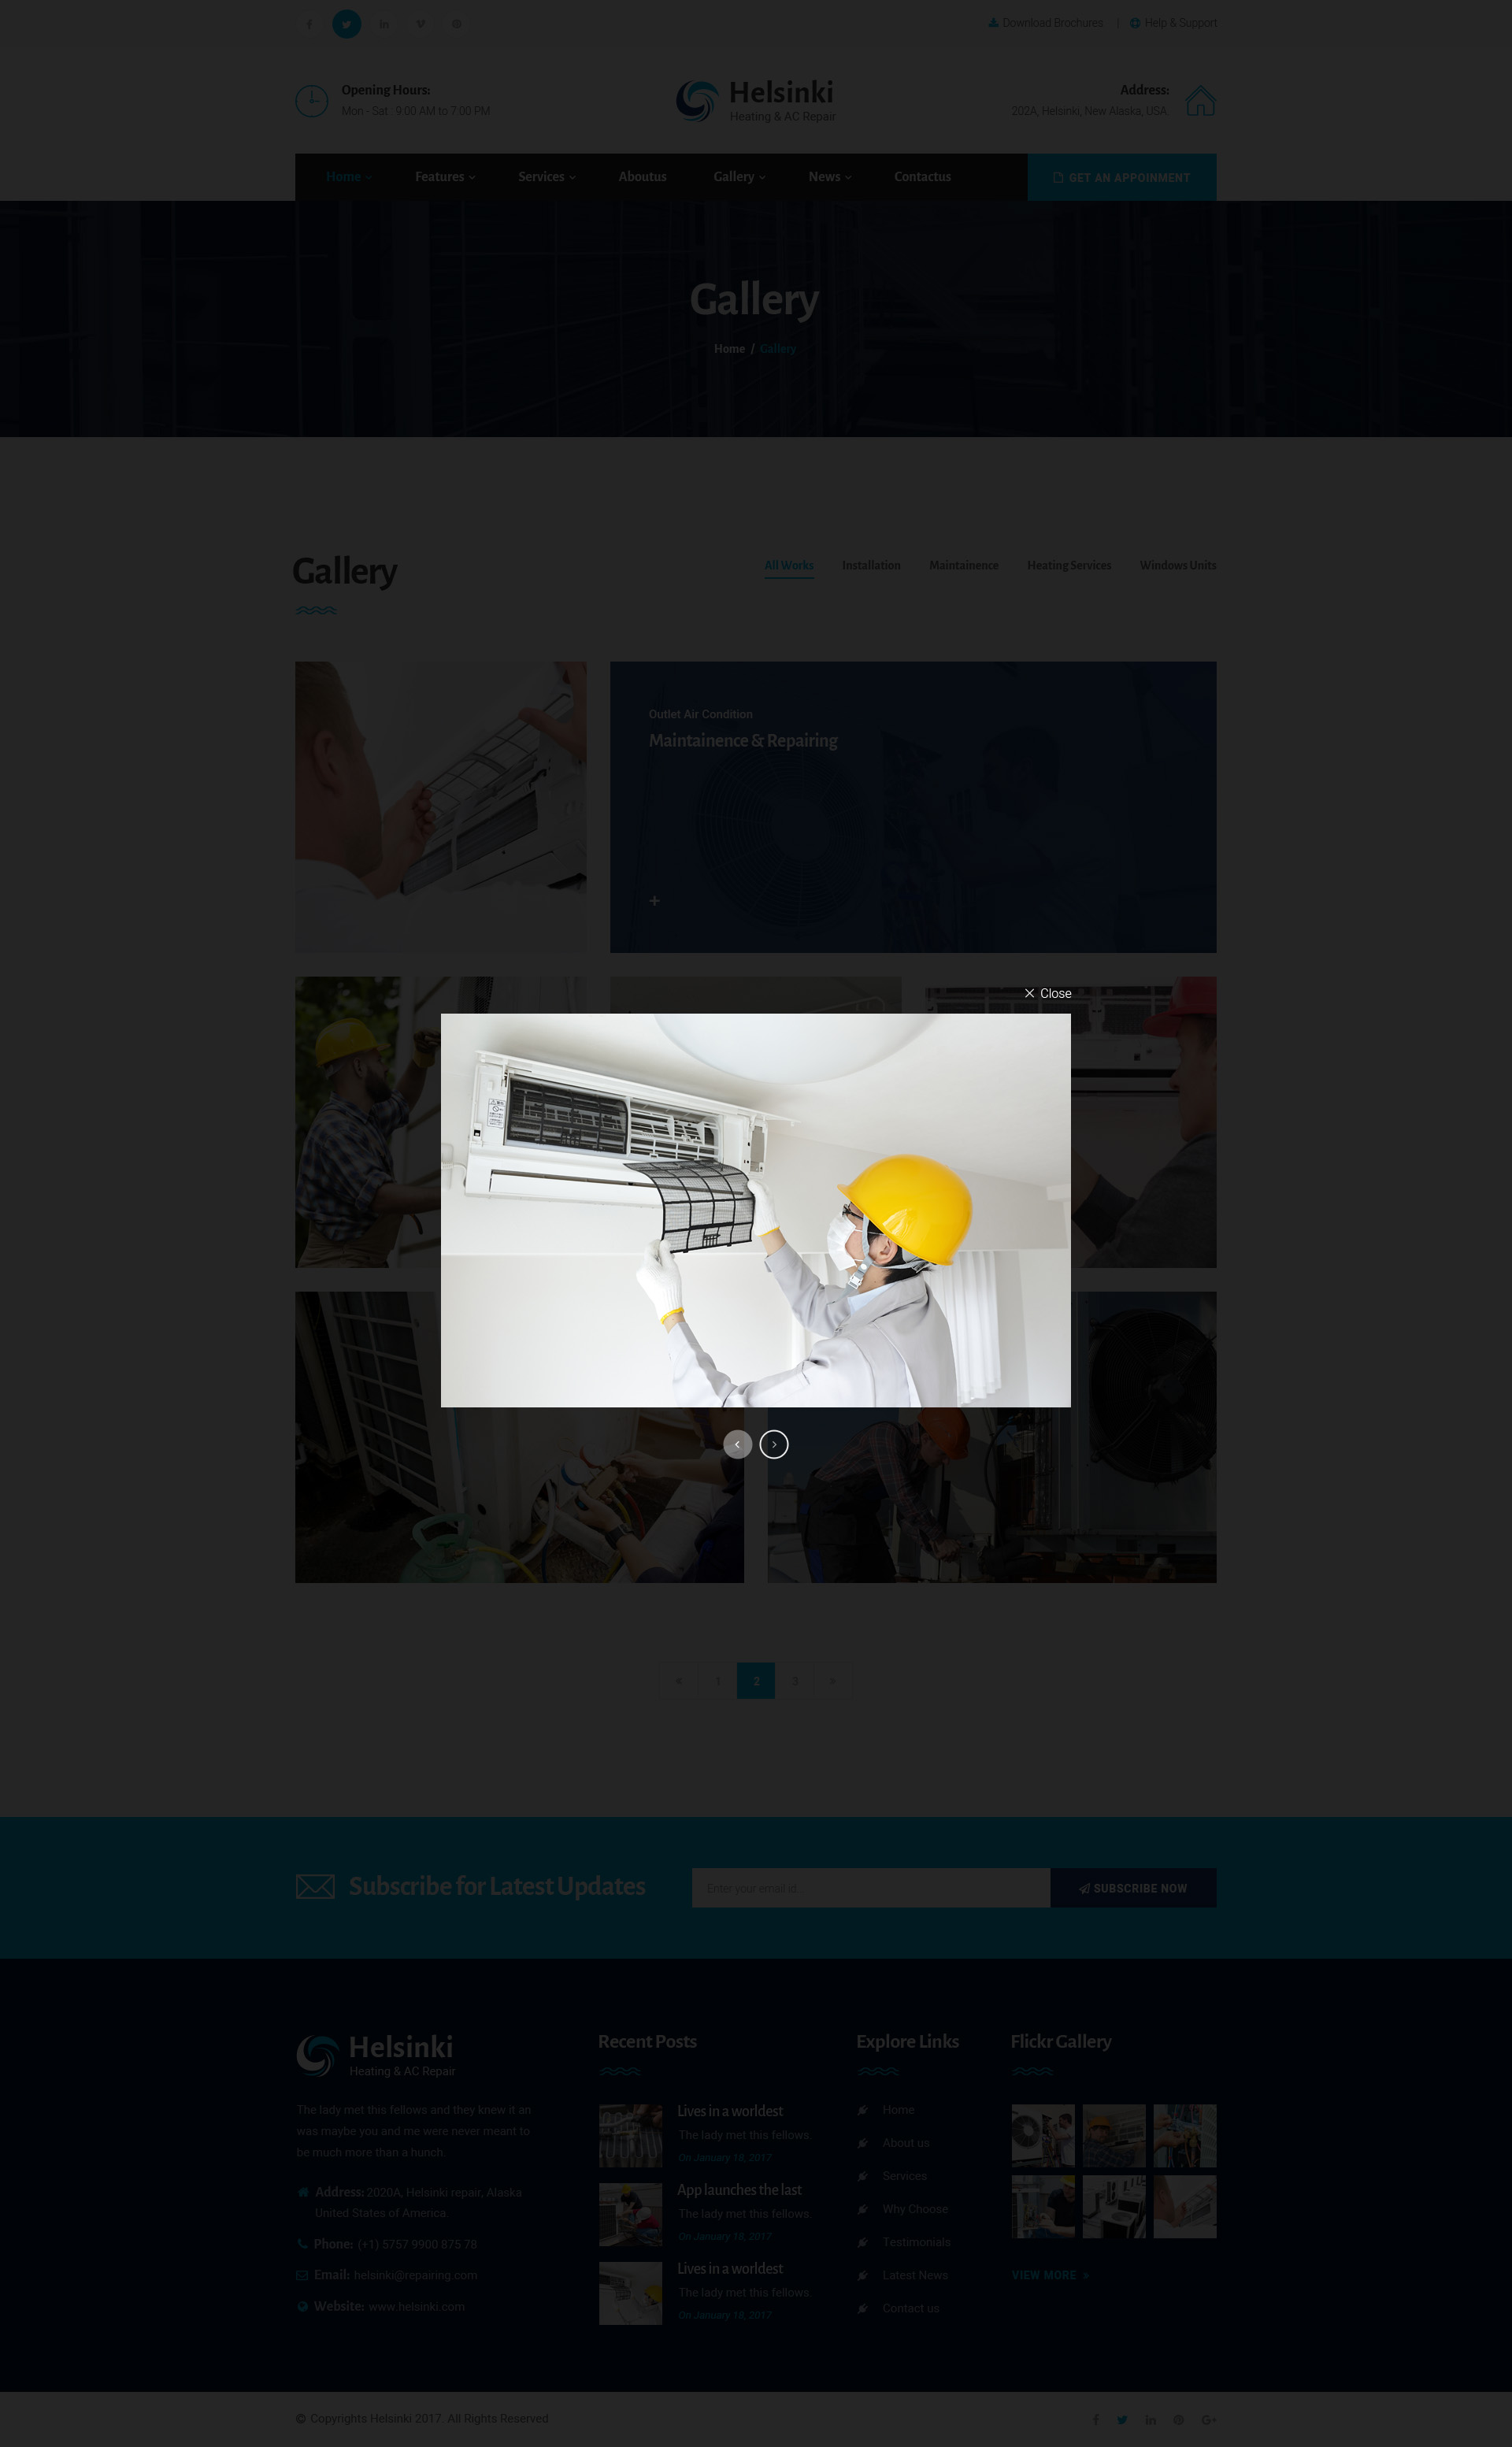 Helsinki heating ac repair psd template by tonatheme themeforest helsinki heating and ac repair preview08 gallery popupg pronofoot35fo Choice Image